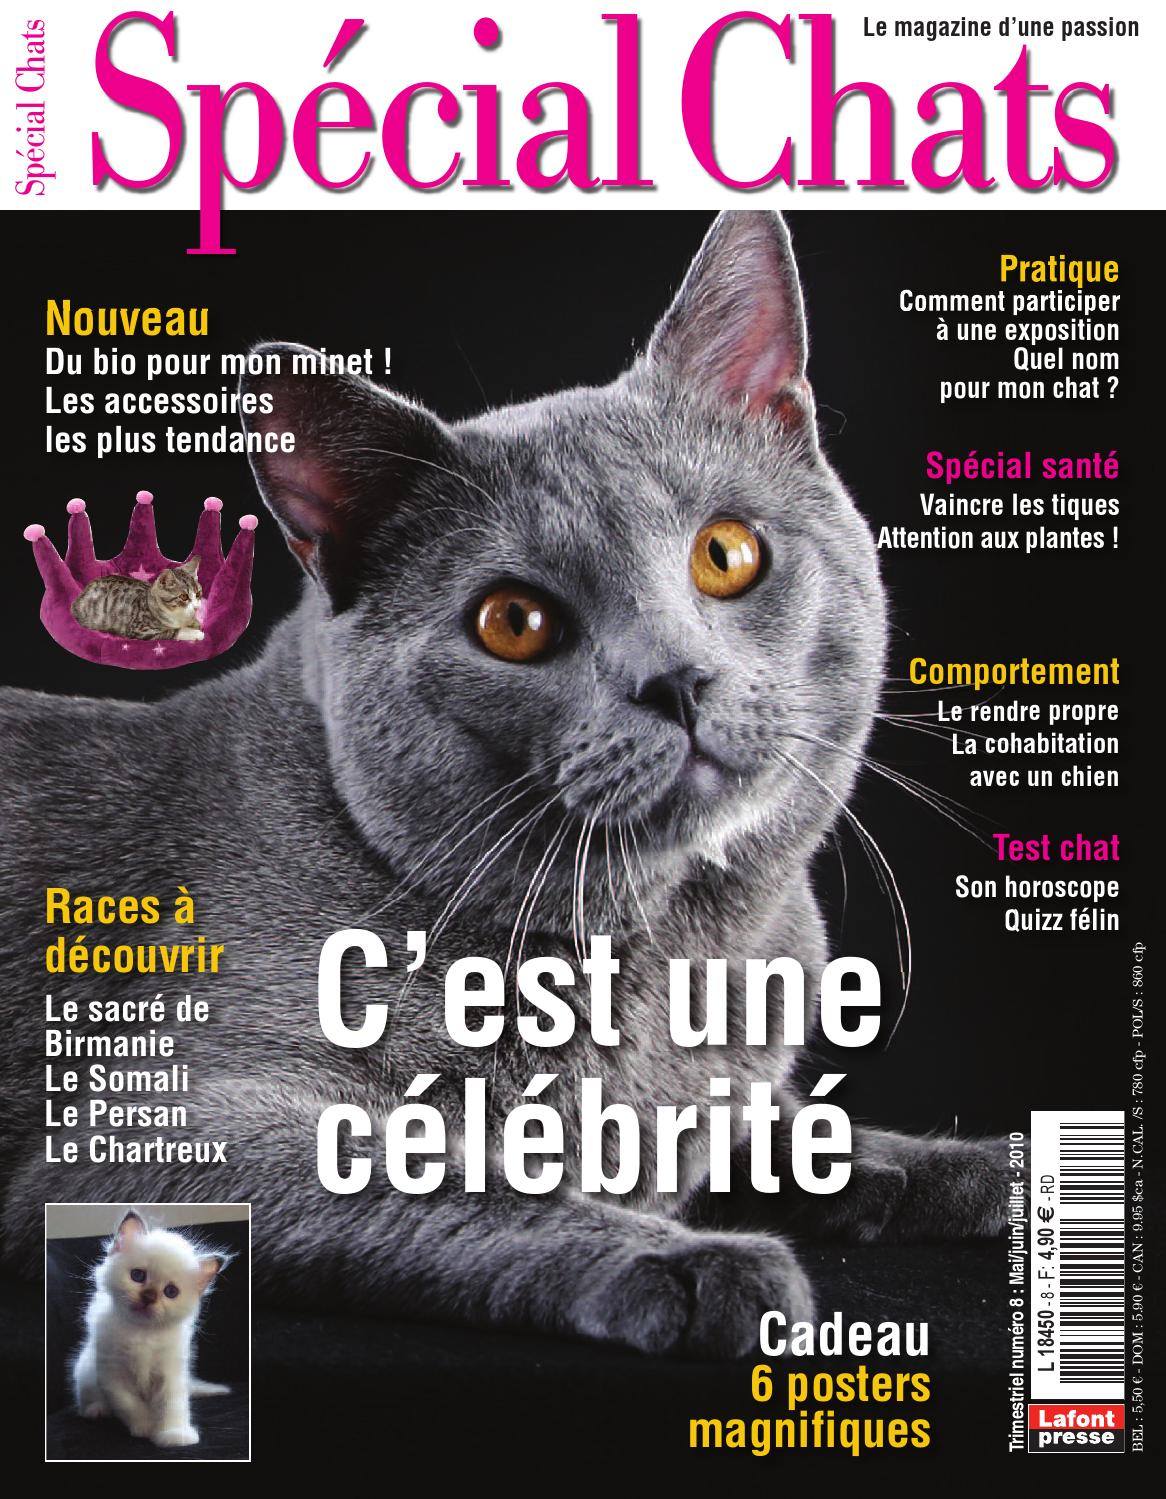 gros humide gouttes chatte extrême deepthroat pipe